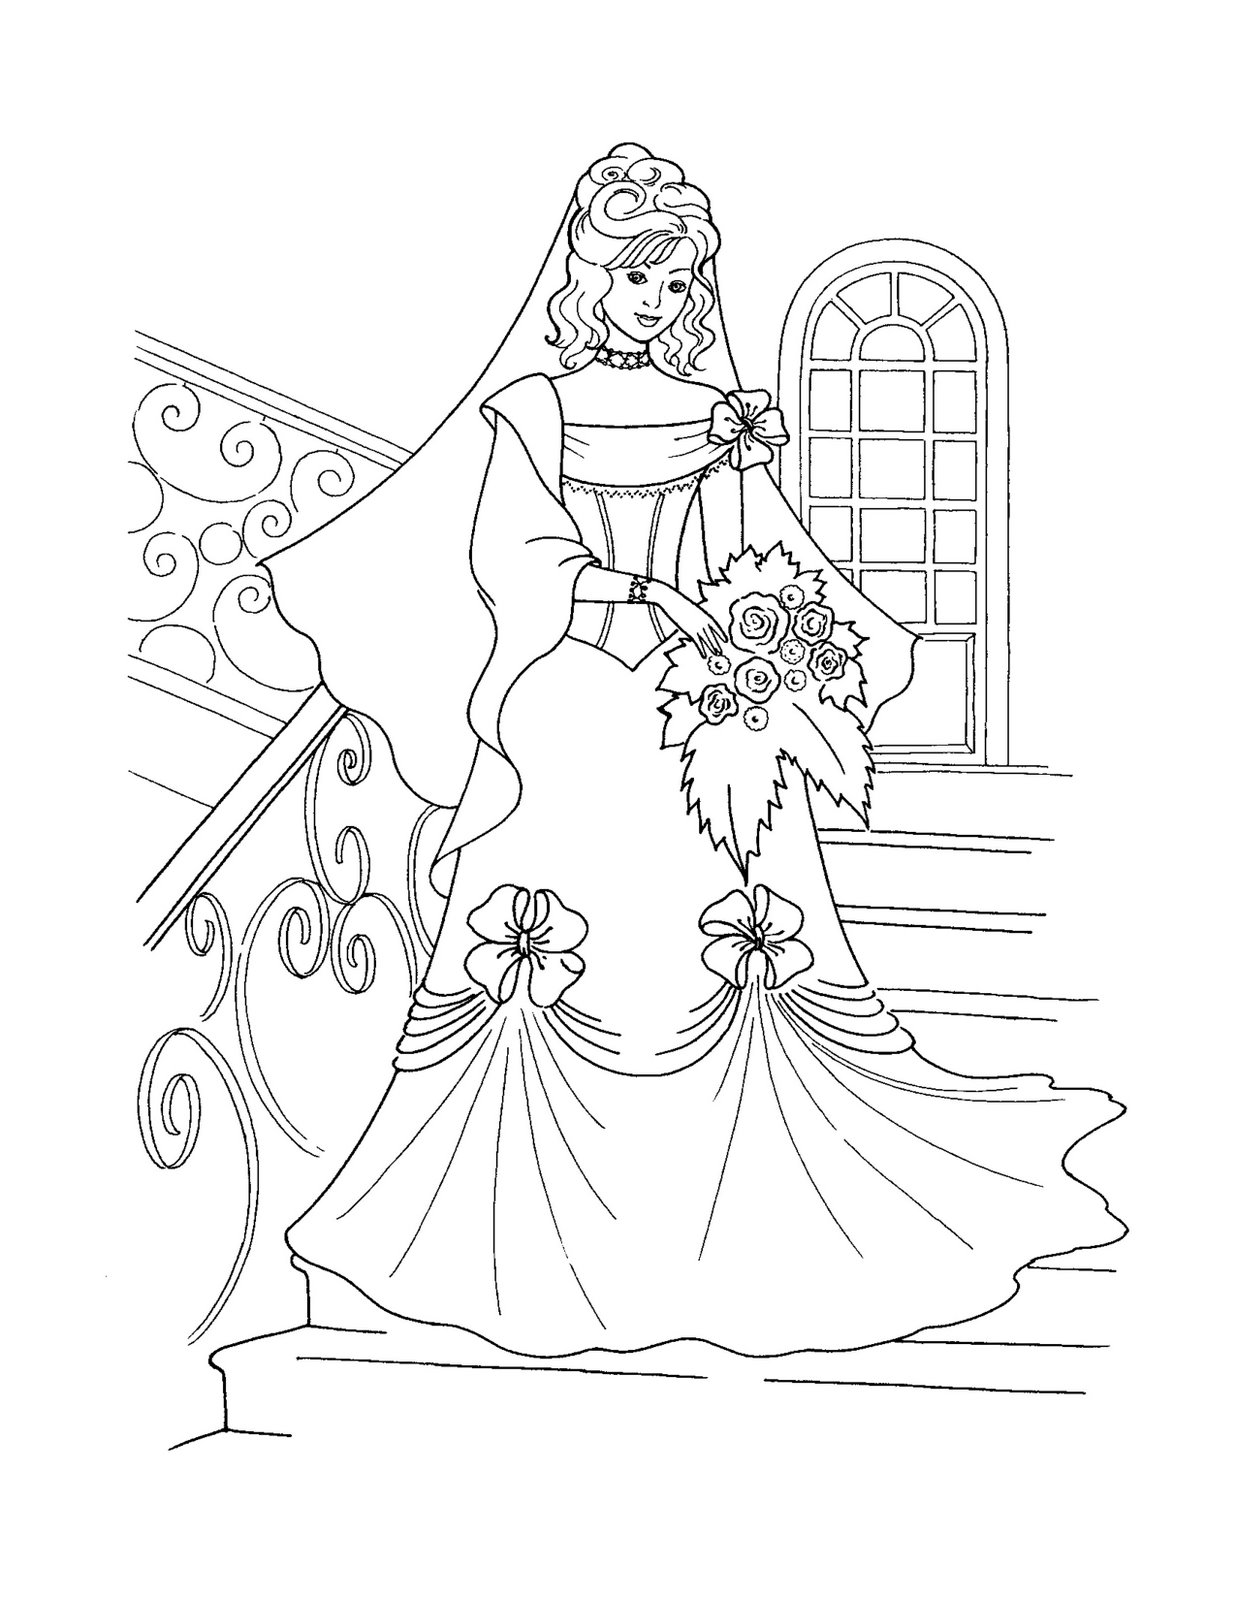 Disney Princess Castle Coloring Pages